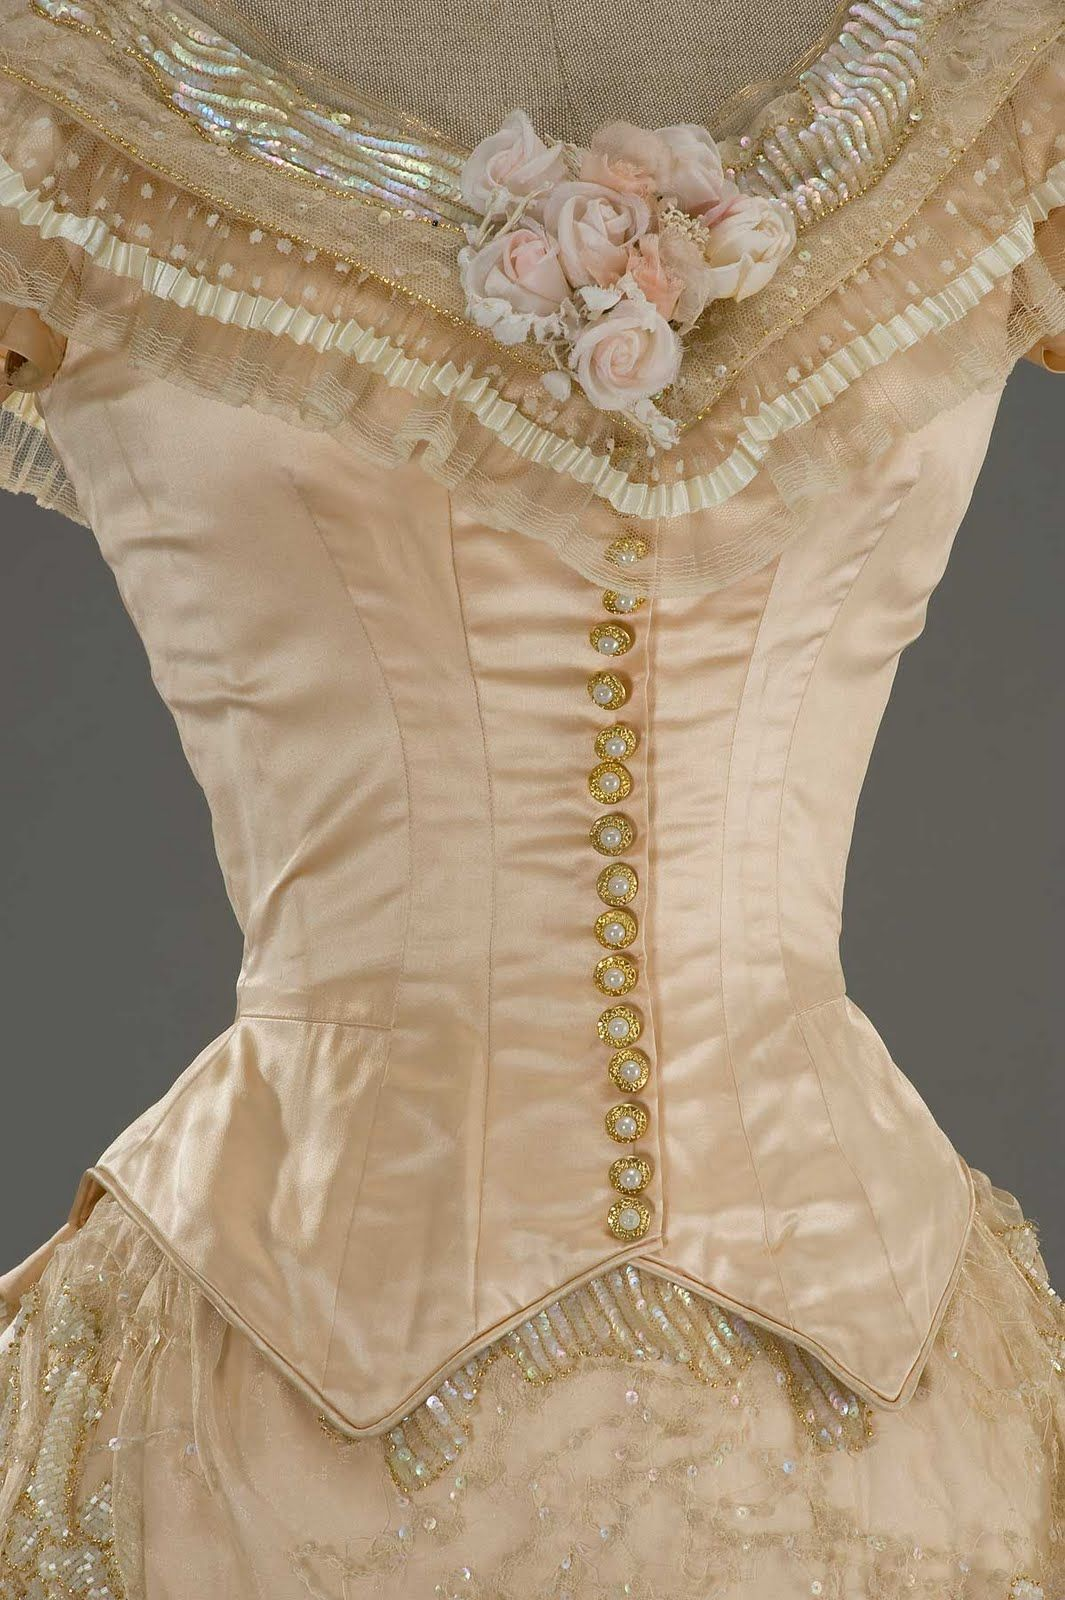 Costume captures mayus ball gown costume ideas victorian